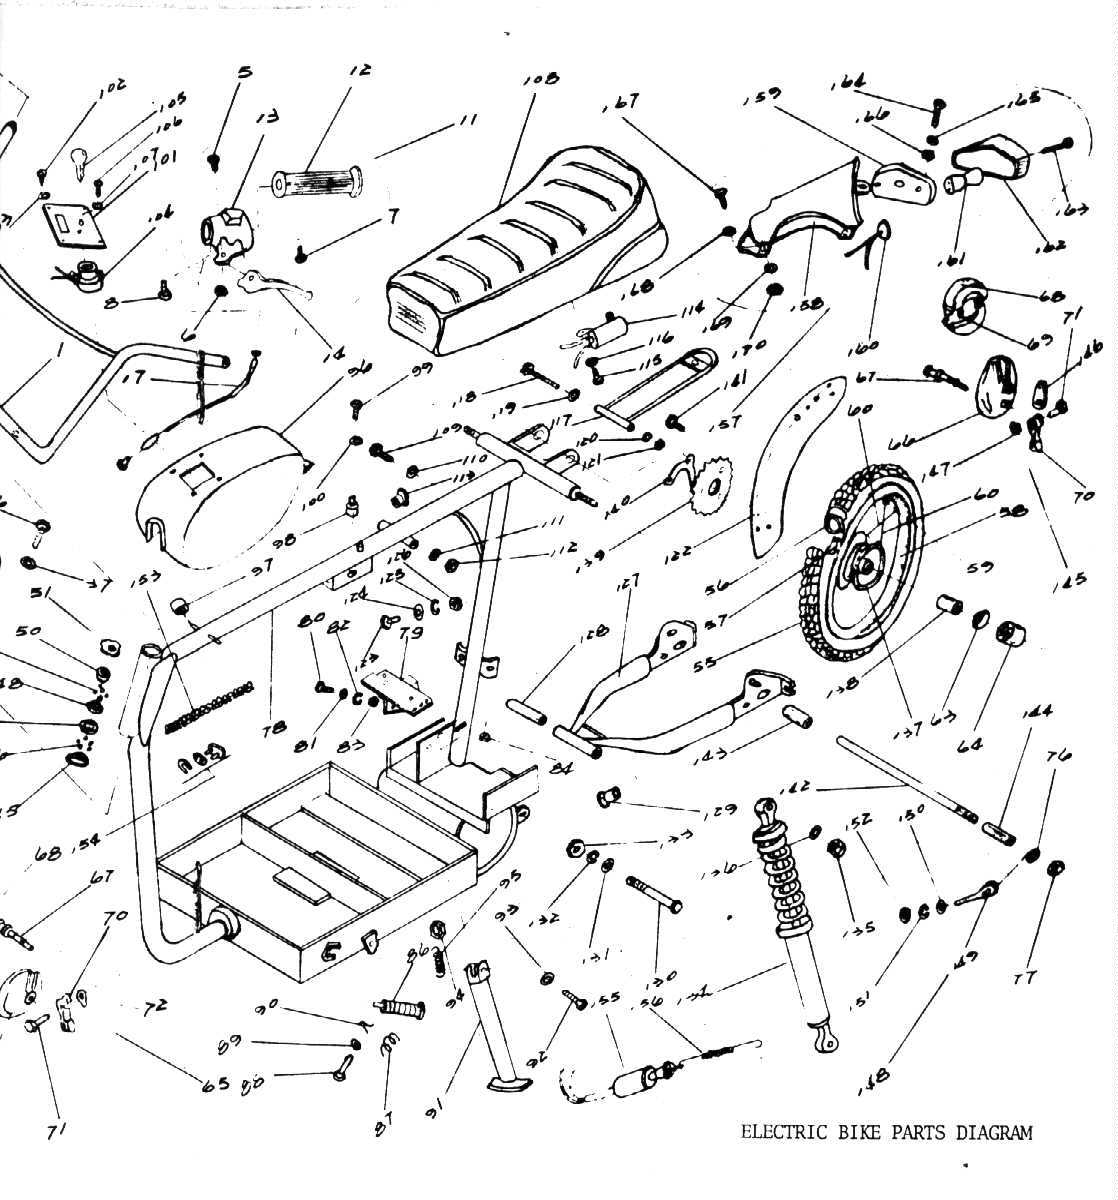 bike parts diagram code alarm ca5051 wiring auranthetic charger documentation